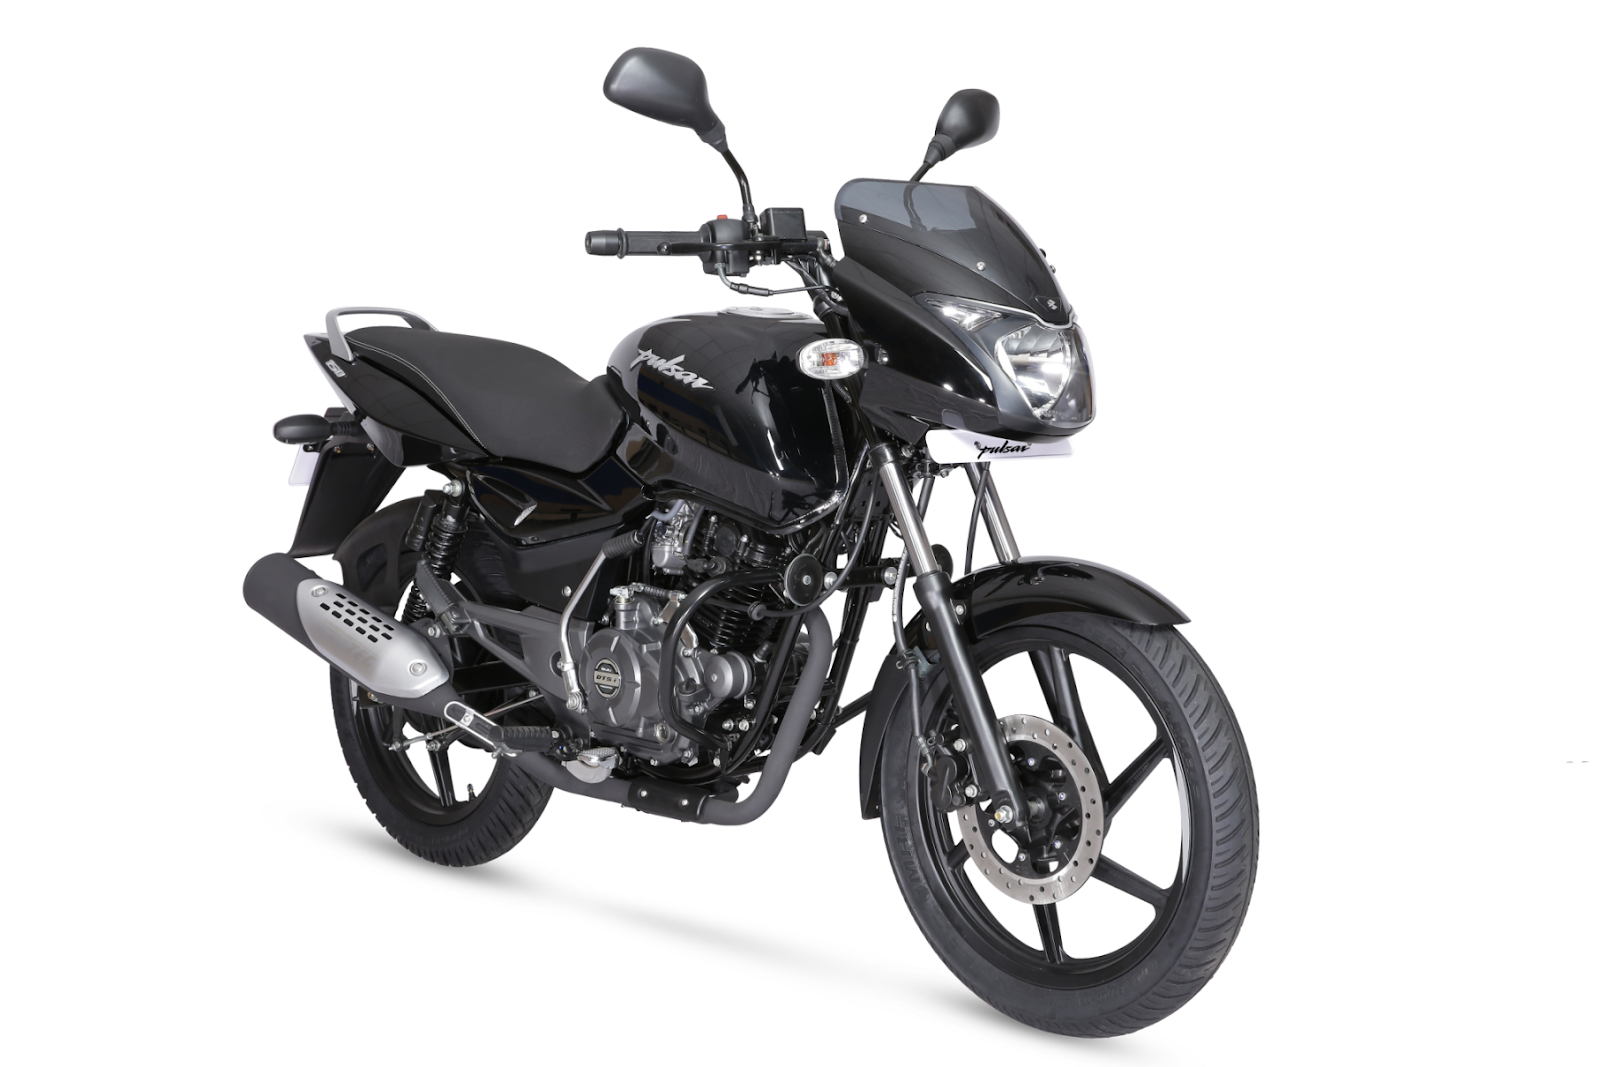 Coordinated headlamp eyebrows pulsar logo side panel mesh and alloy grab rail a 3d logo on the rear cowl and the colored alloy wheel decal complete